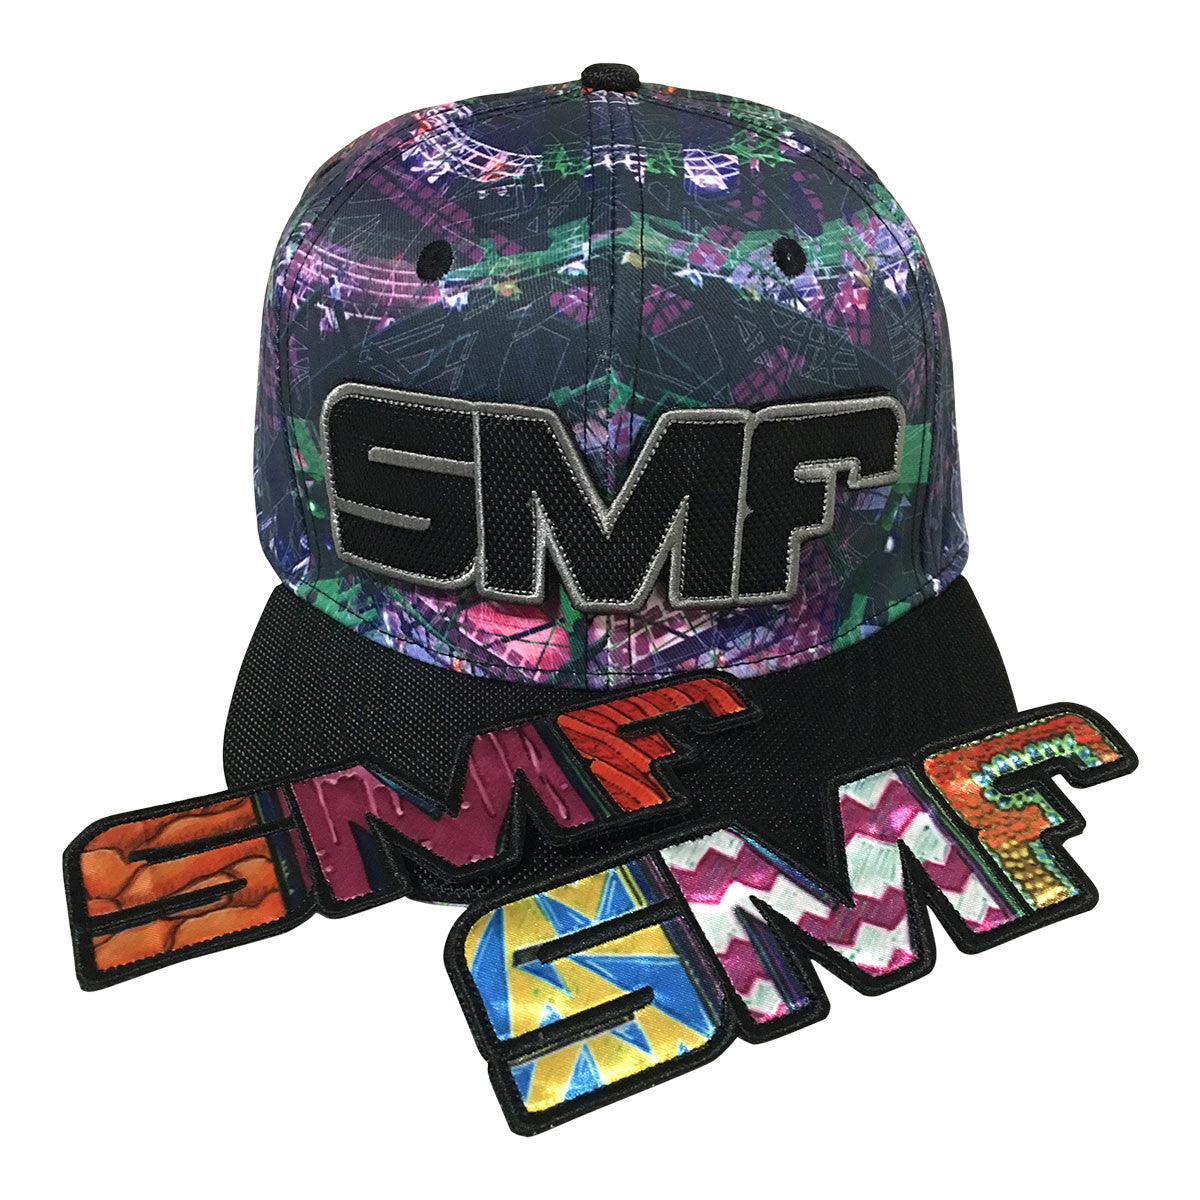 Pre Sale SMF 2017 - Snapback Hat (Patterned) - PICK UP AT EVENT ONLY